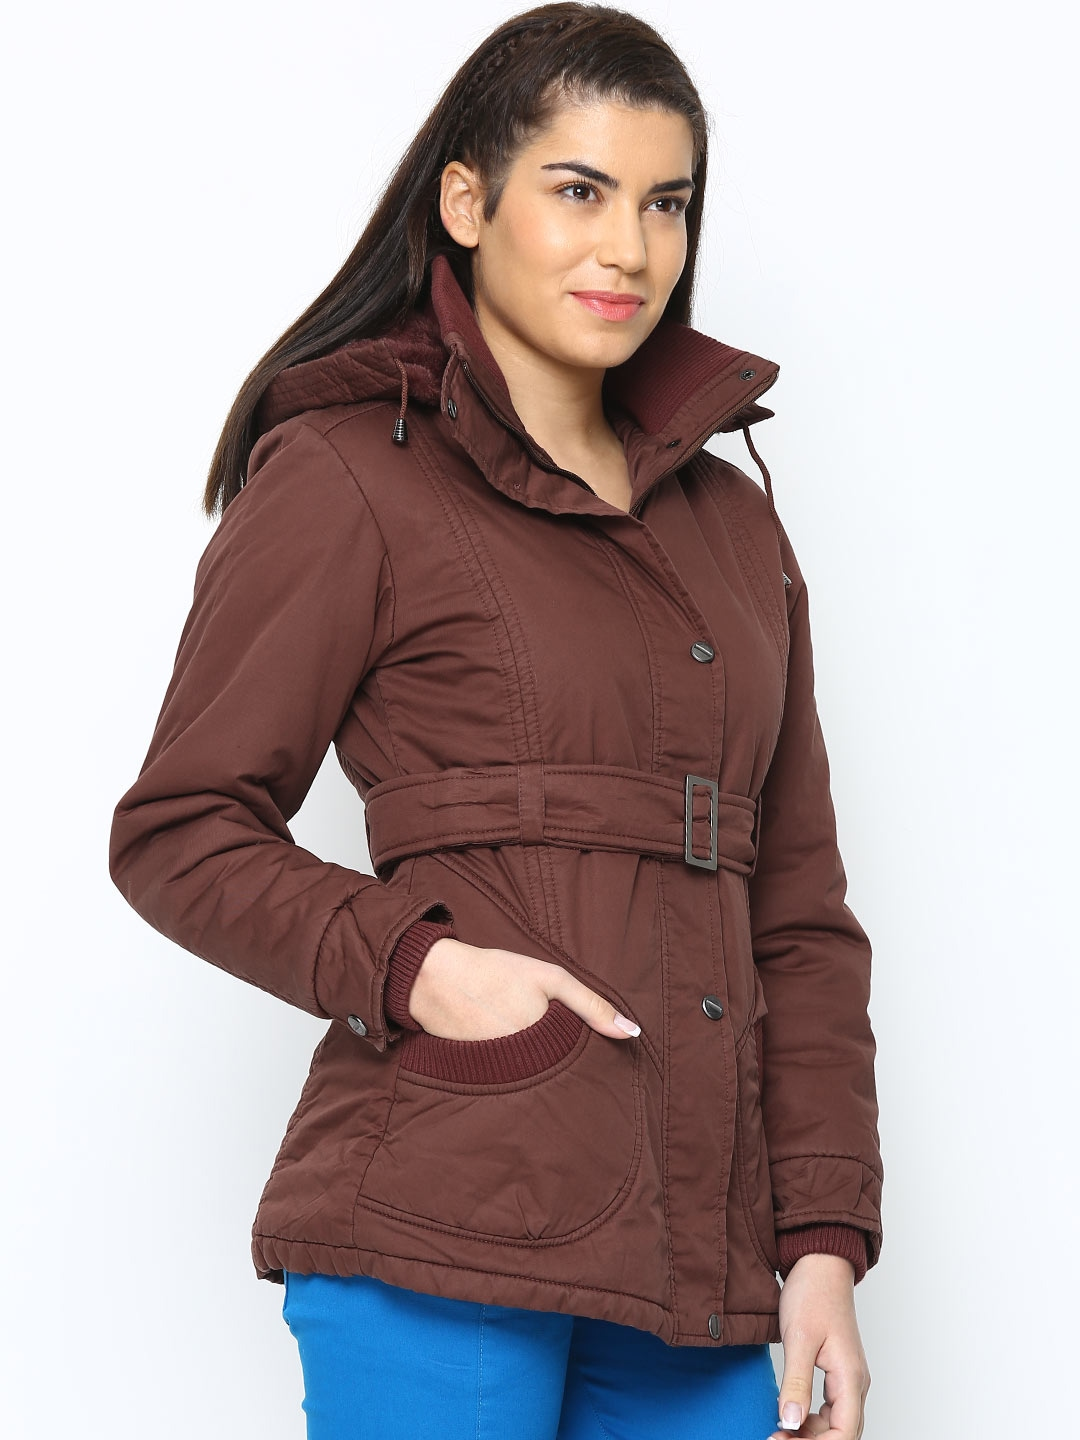 fort collins womens jacket bmqpqlp